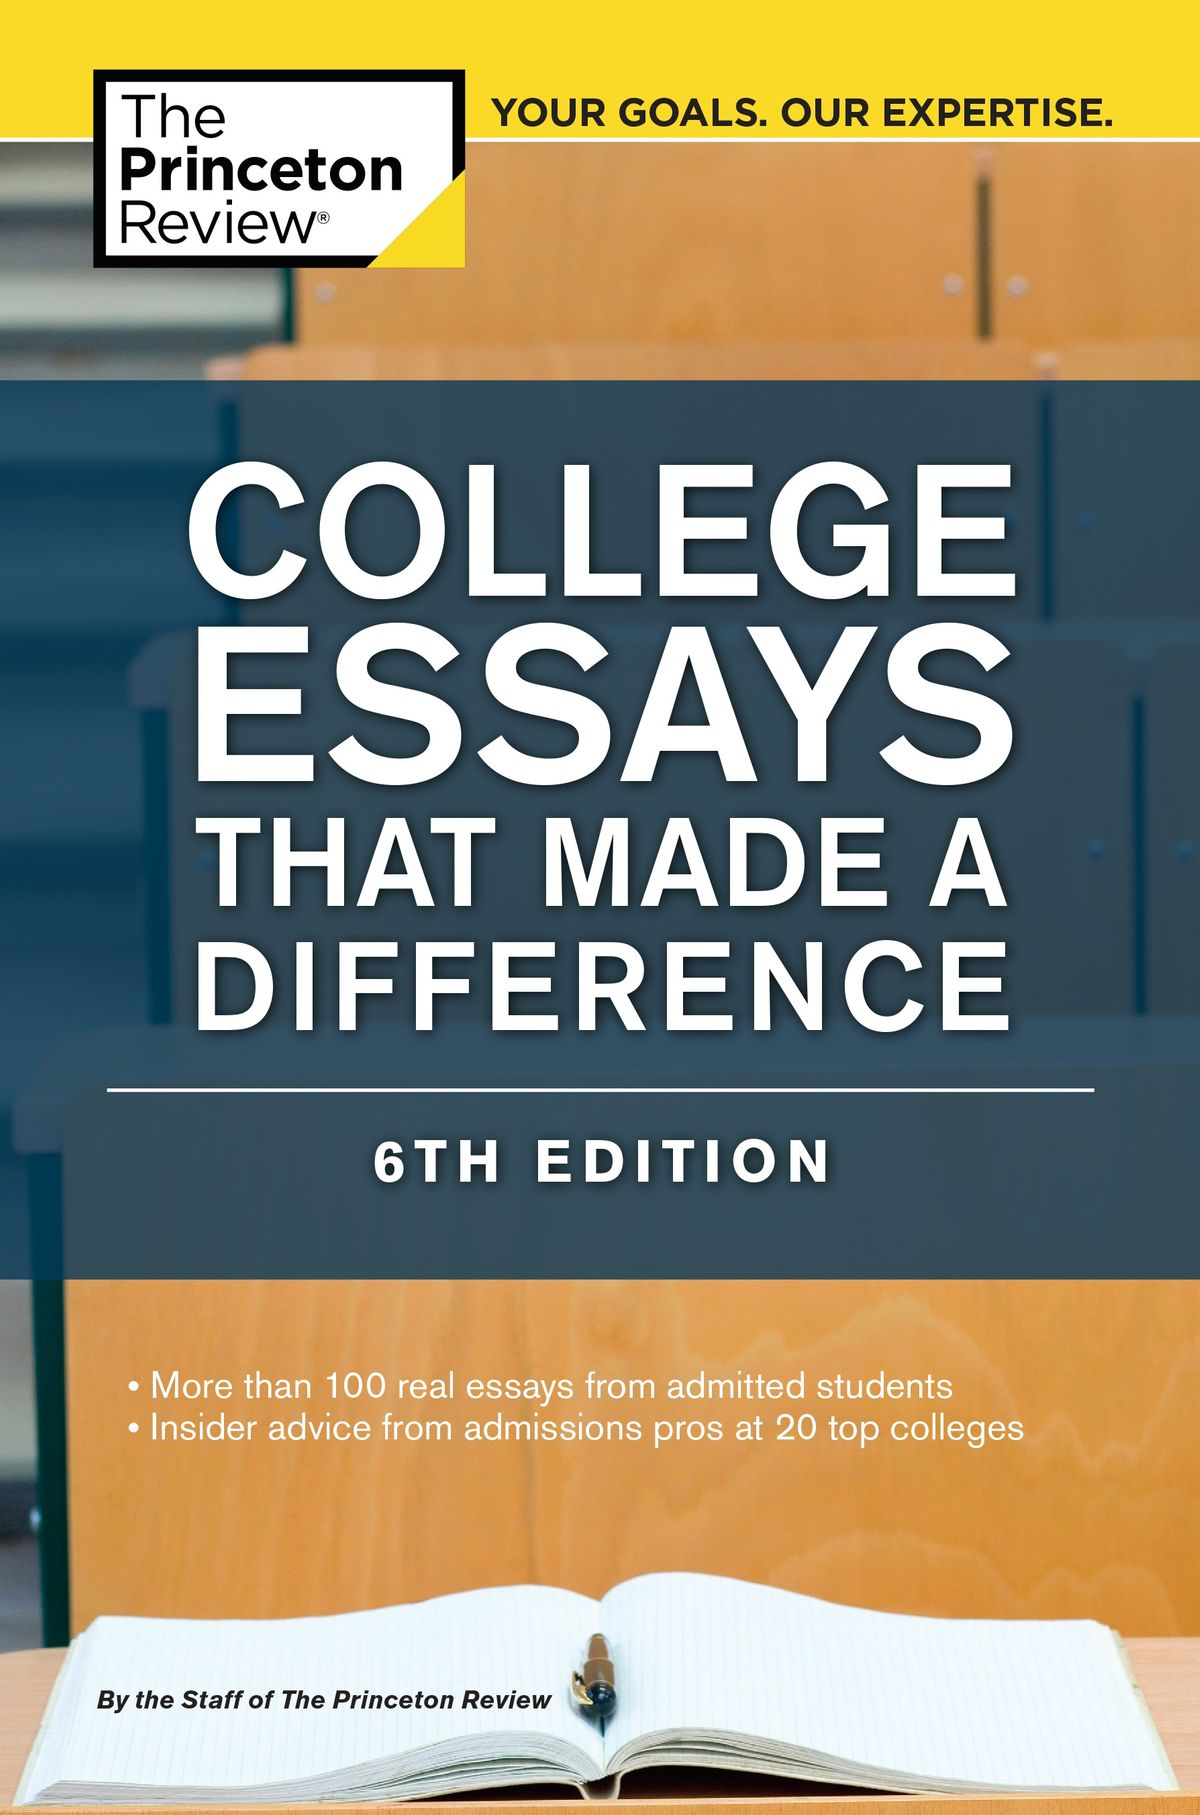 023 Princeton Essays Essay Example College That Made Difference 6th Shocking 2018 Review Grader Help Full